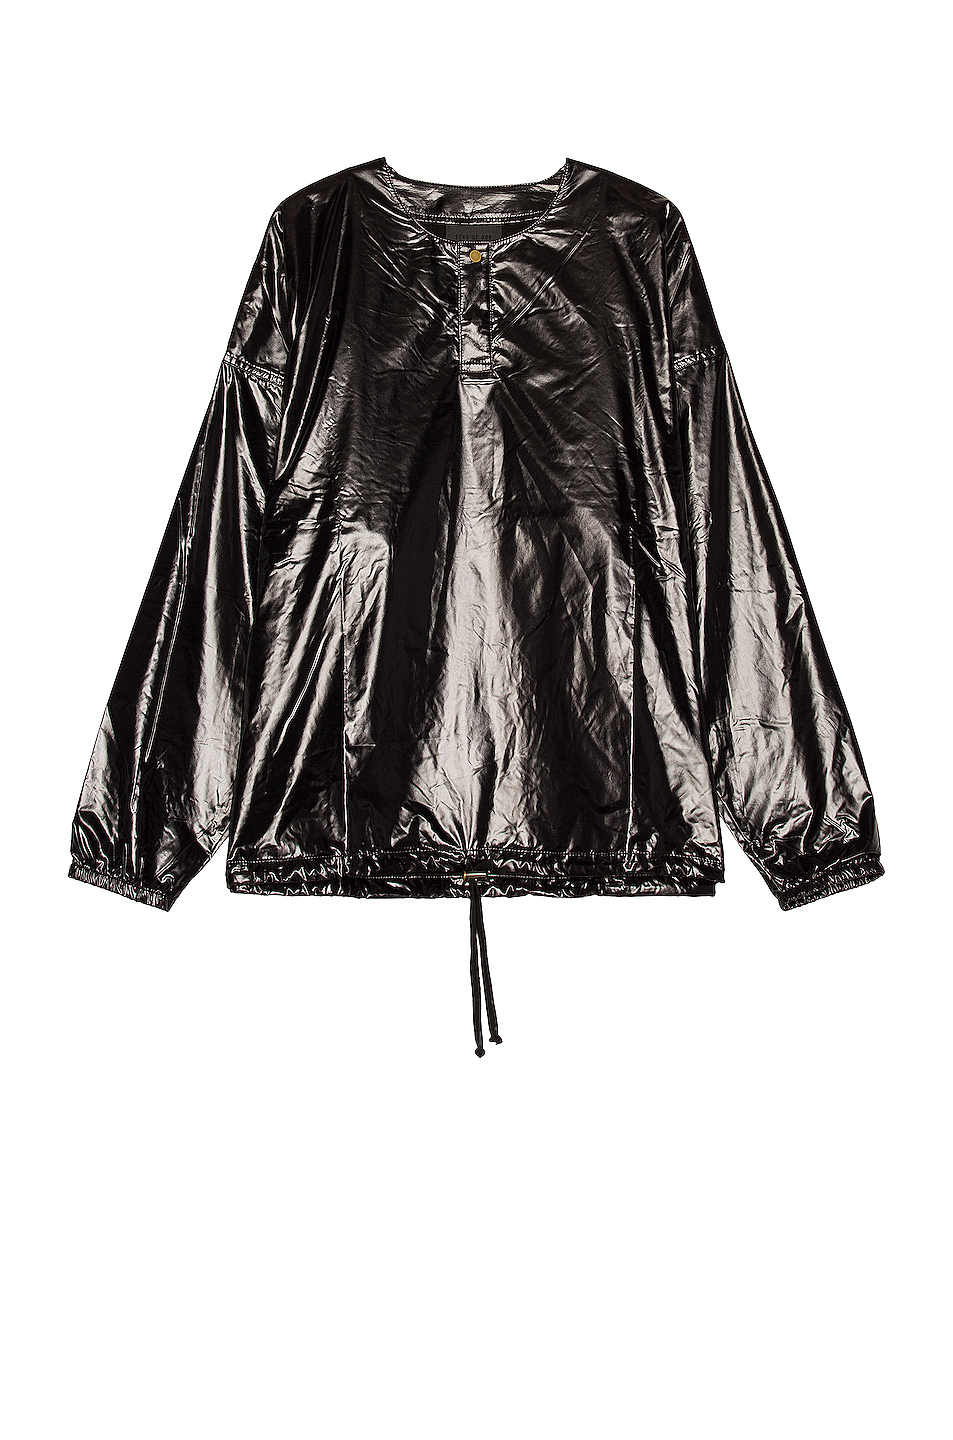 Fear of God Patent Batting Practice Jacket